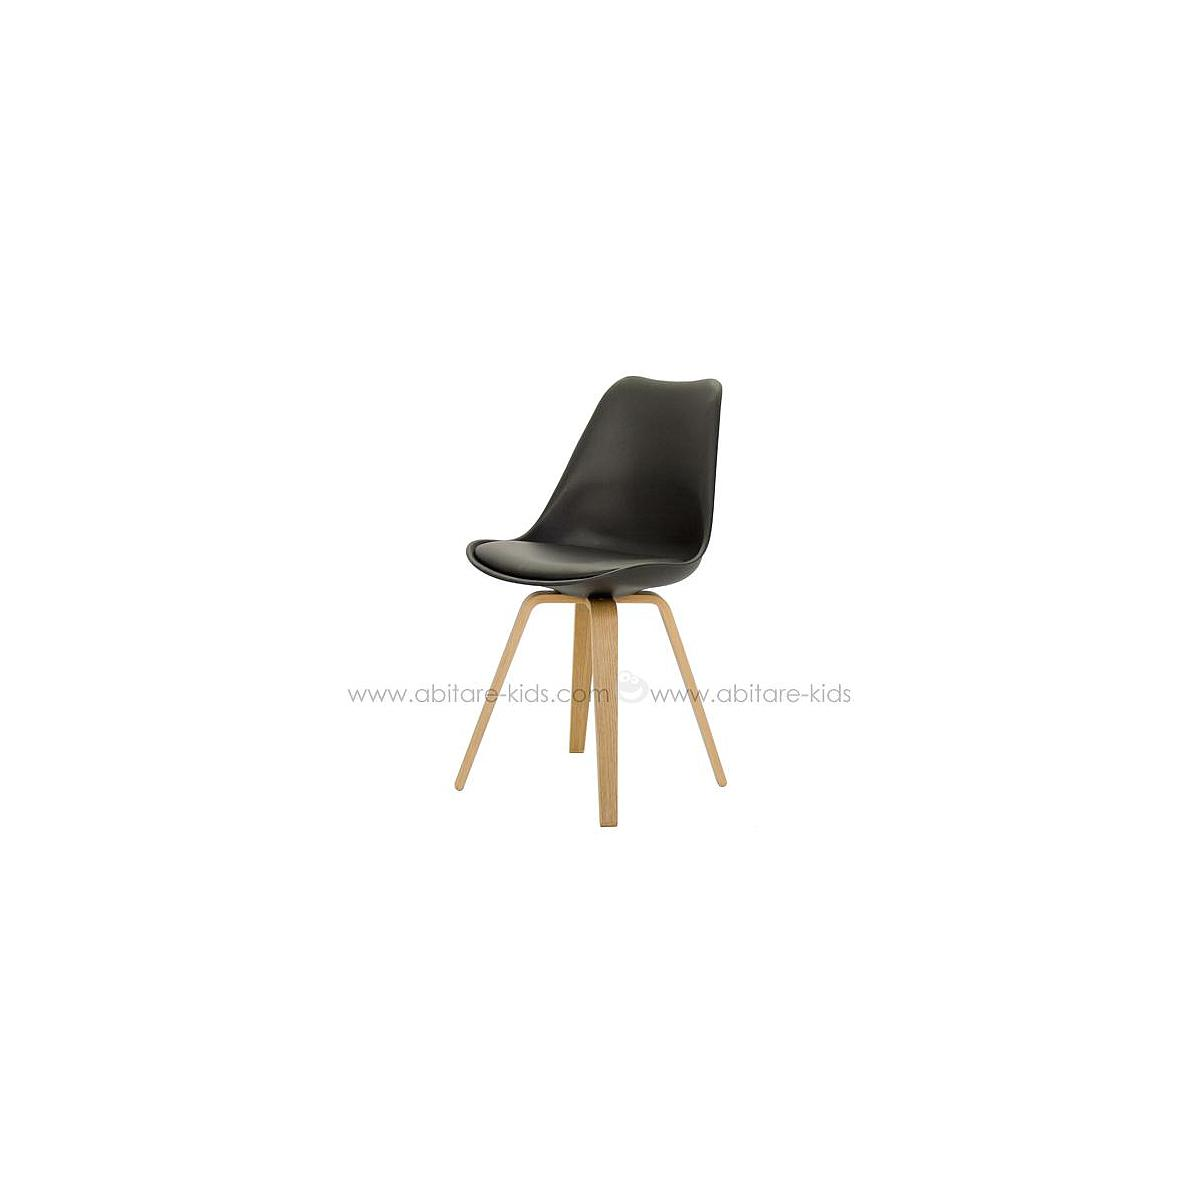 C-BAR by Tenzo Chaise Gina-Ella Assise noire et pied chêne